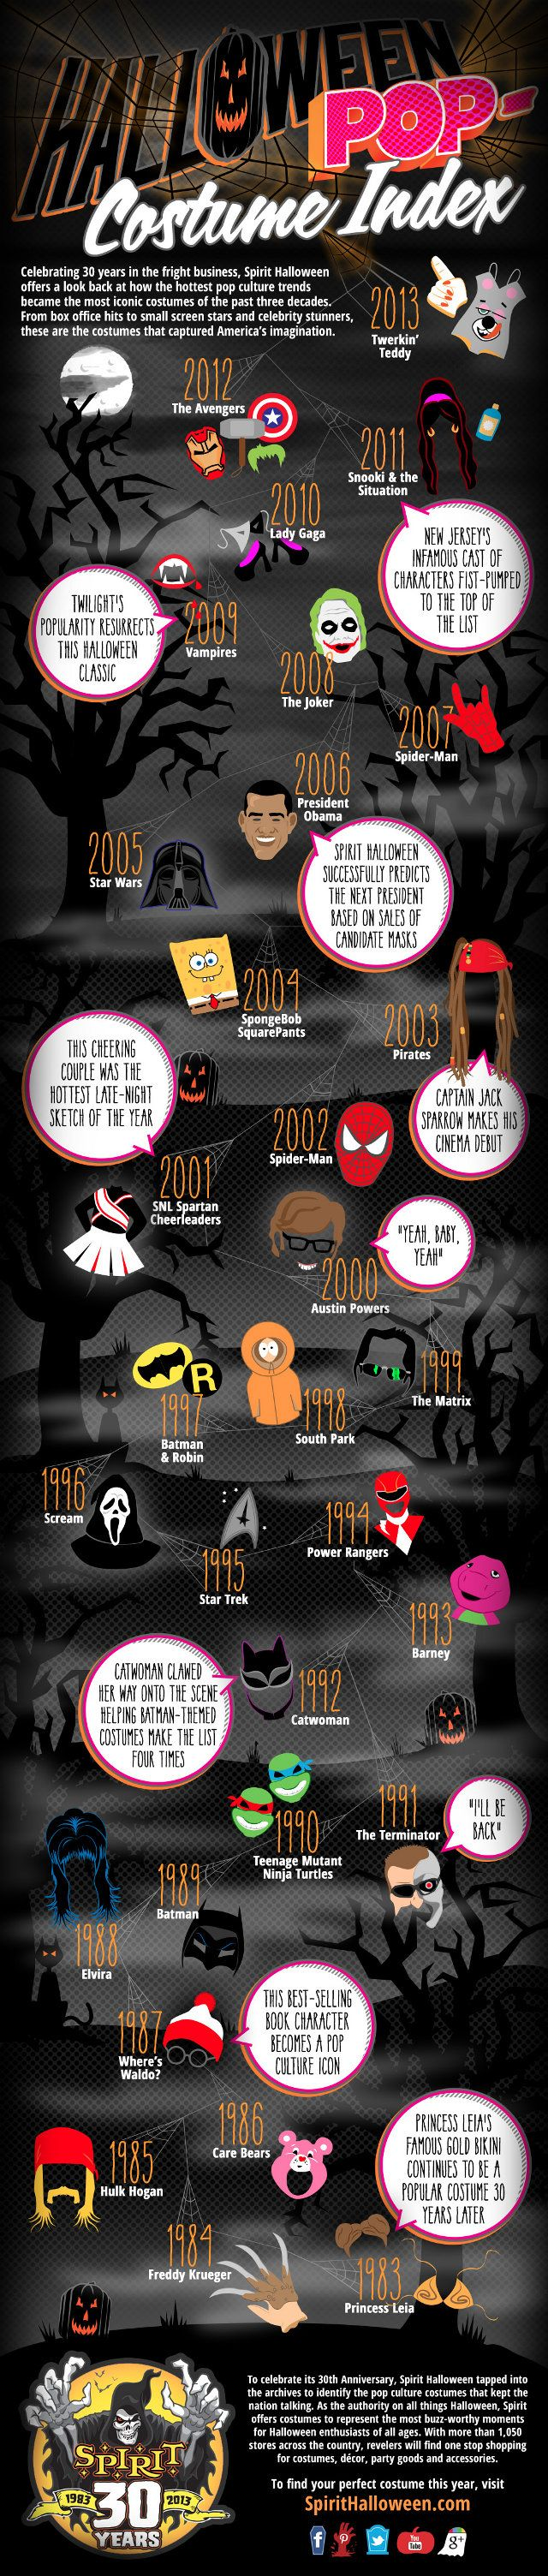 Our Pop-Costume Index made it to geekologie.com! Check out their write up on our 30 years of the most popular Halloween costumes!